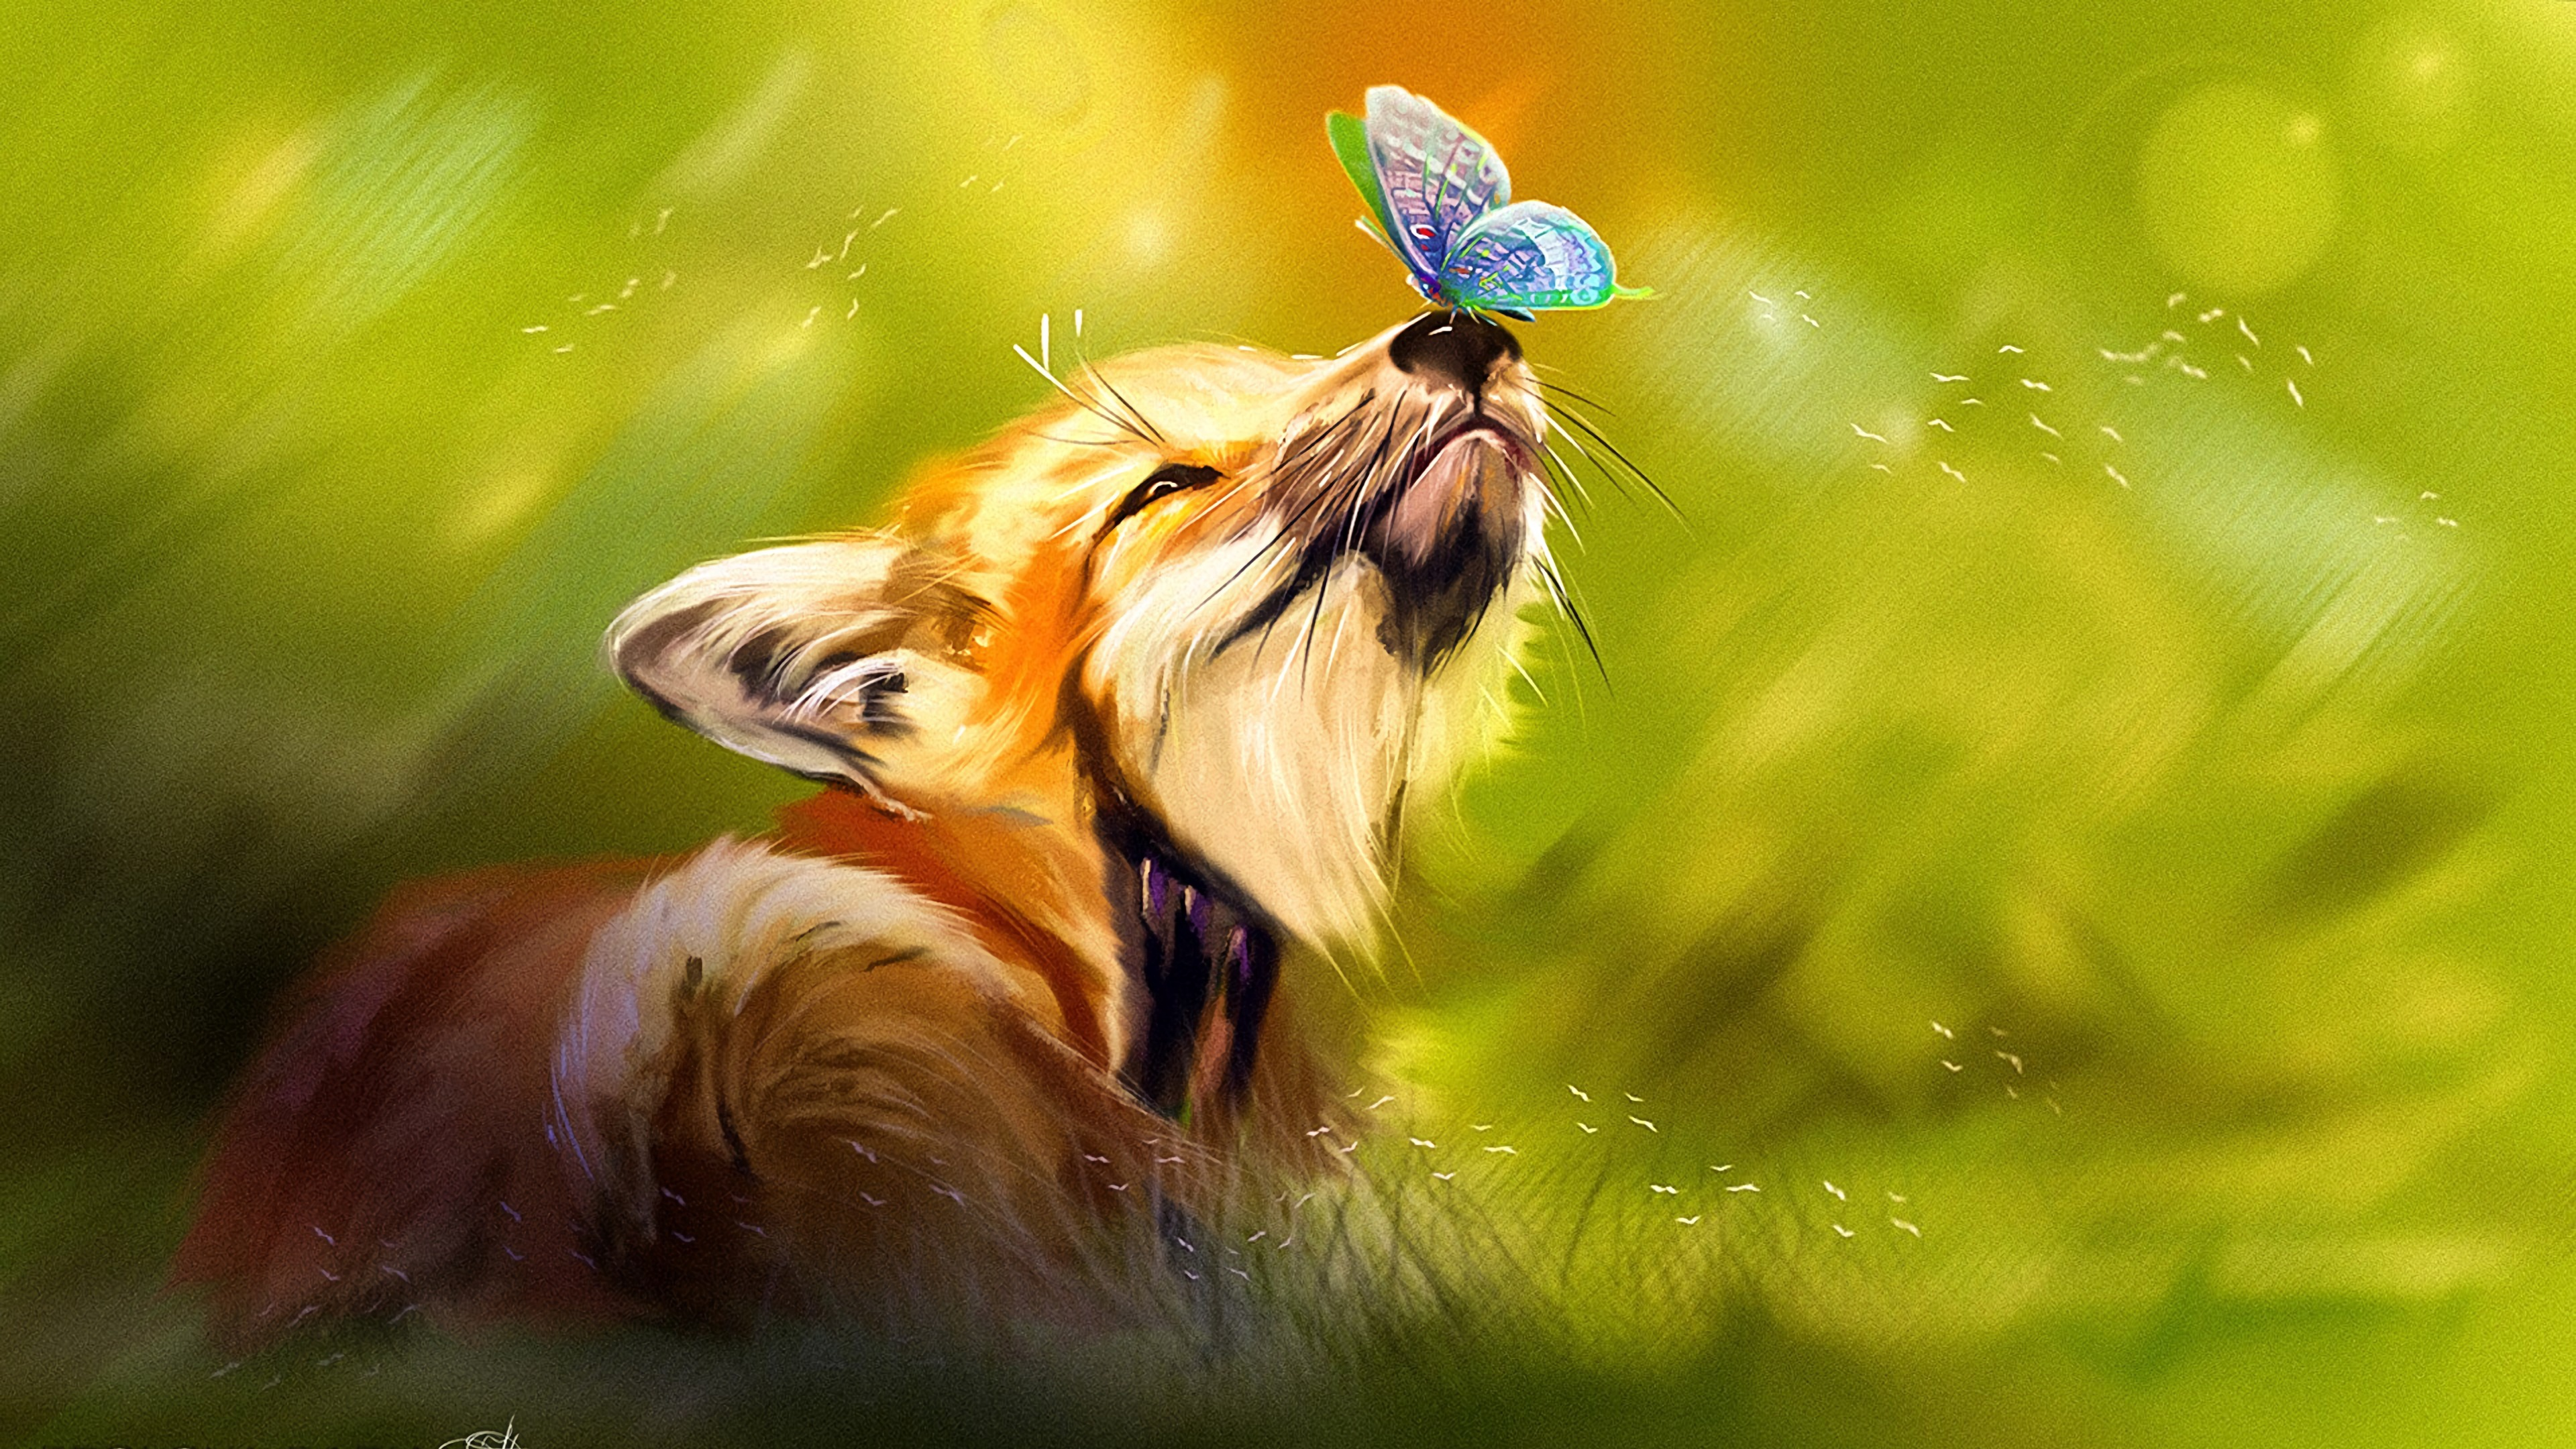 Fox With Butterfly In Nose Wallpaper 4k Ultra Hd Id4288